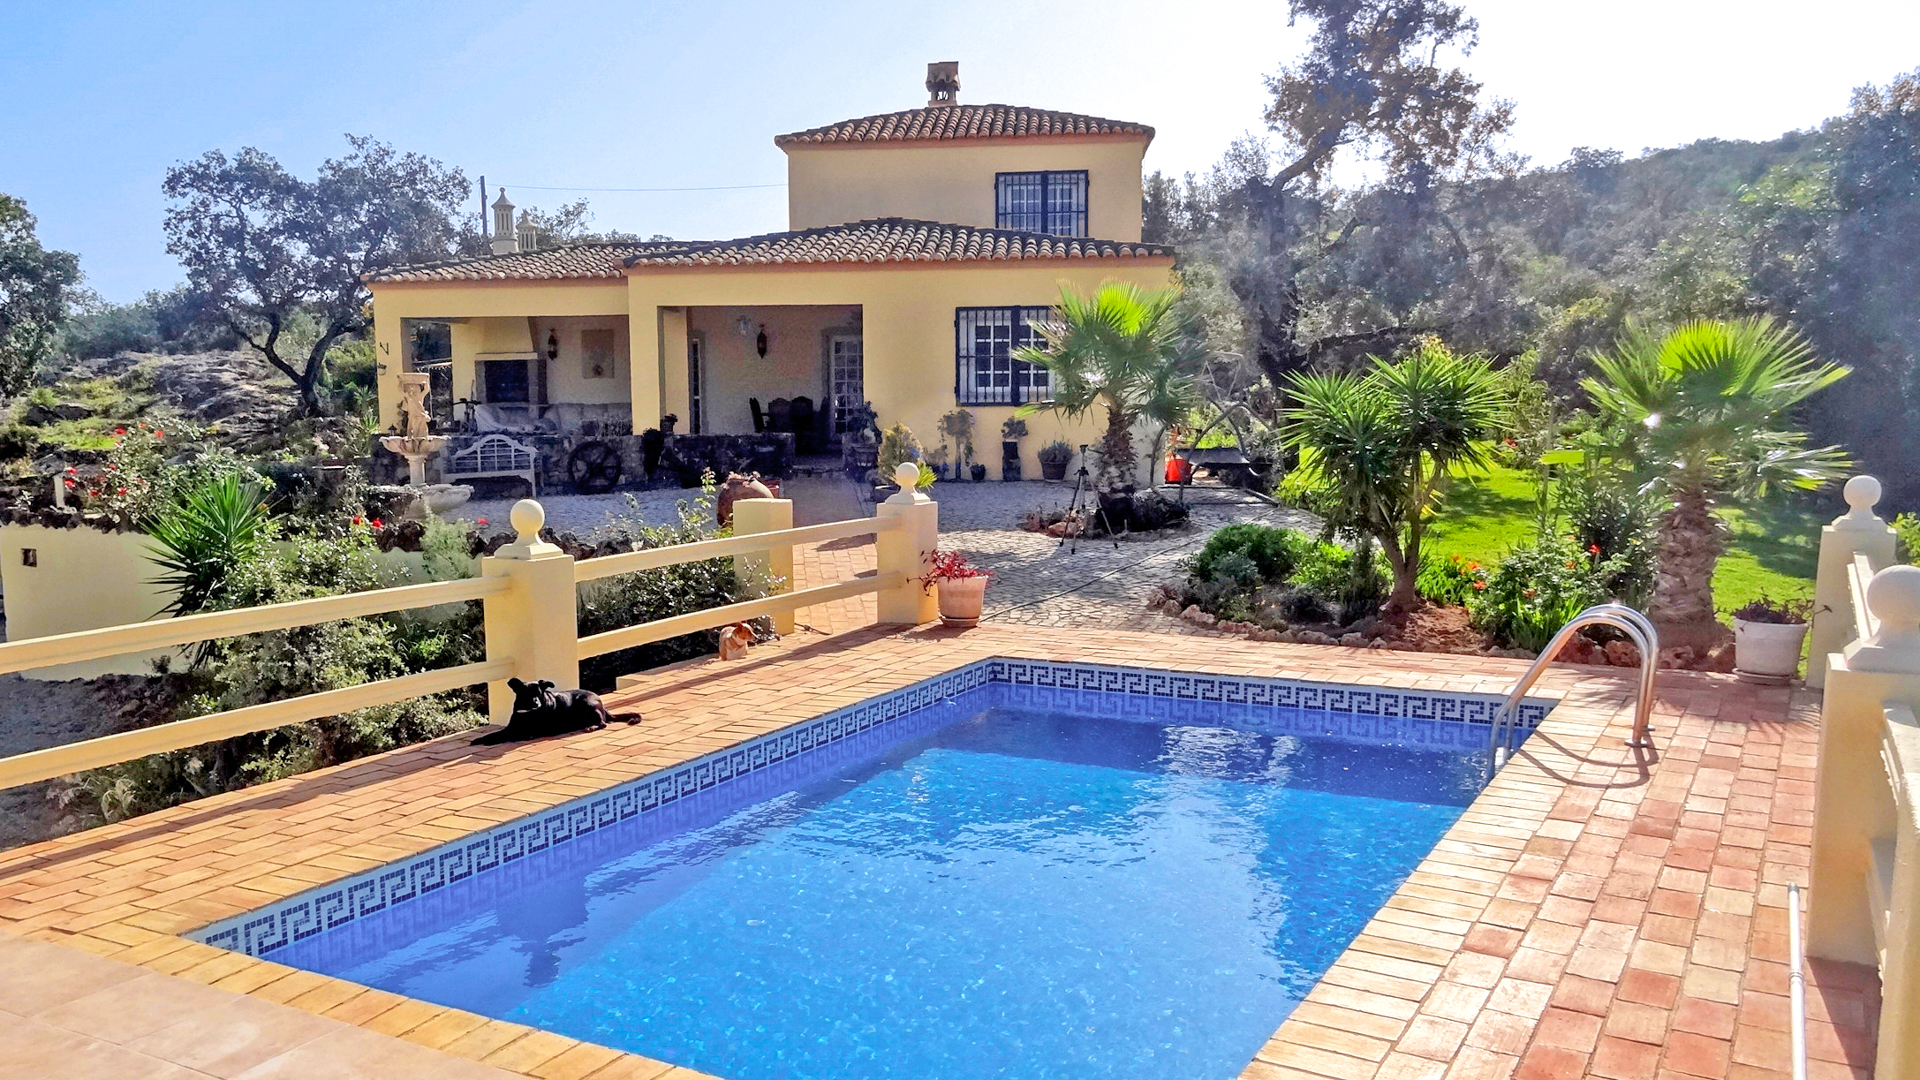 3 Bedroom Country Retreat with Pool, Stables and Paddock near Santa Bárbara | VM761 3 bedroom country house with pool near Santa Bárbara. The house has also stables and paddocks, perfect for those who love horses. There is a 1 bedroom annex for guests.